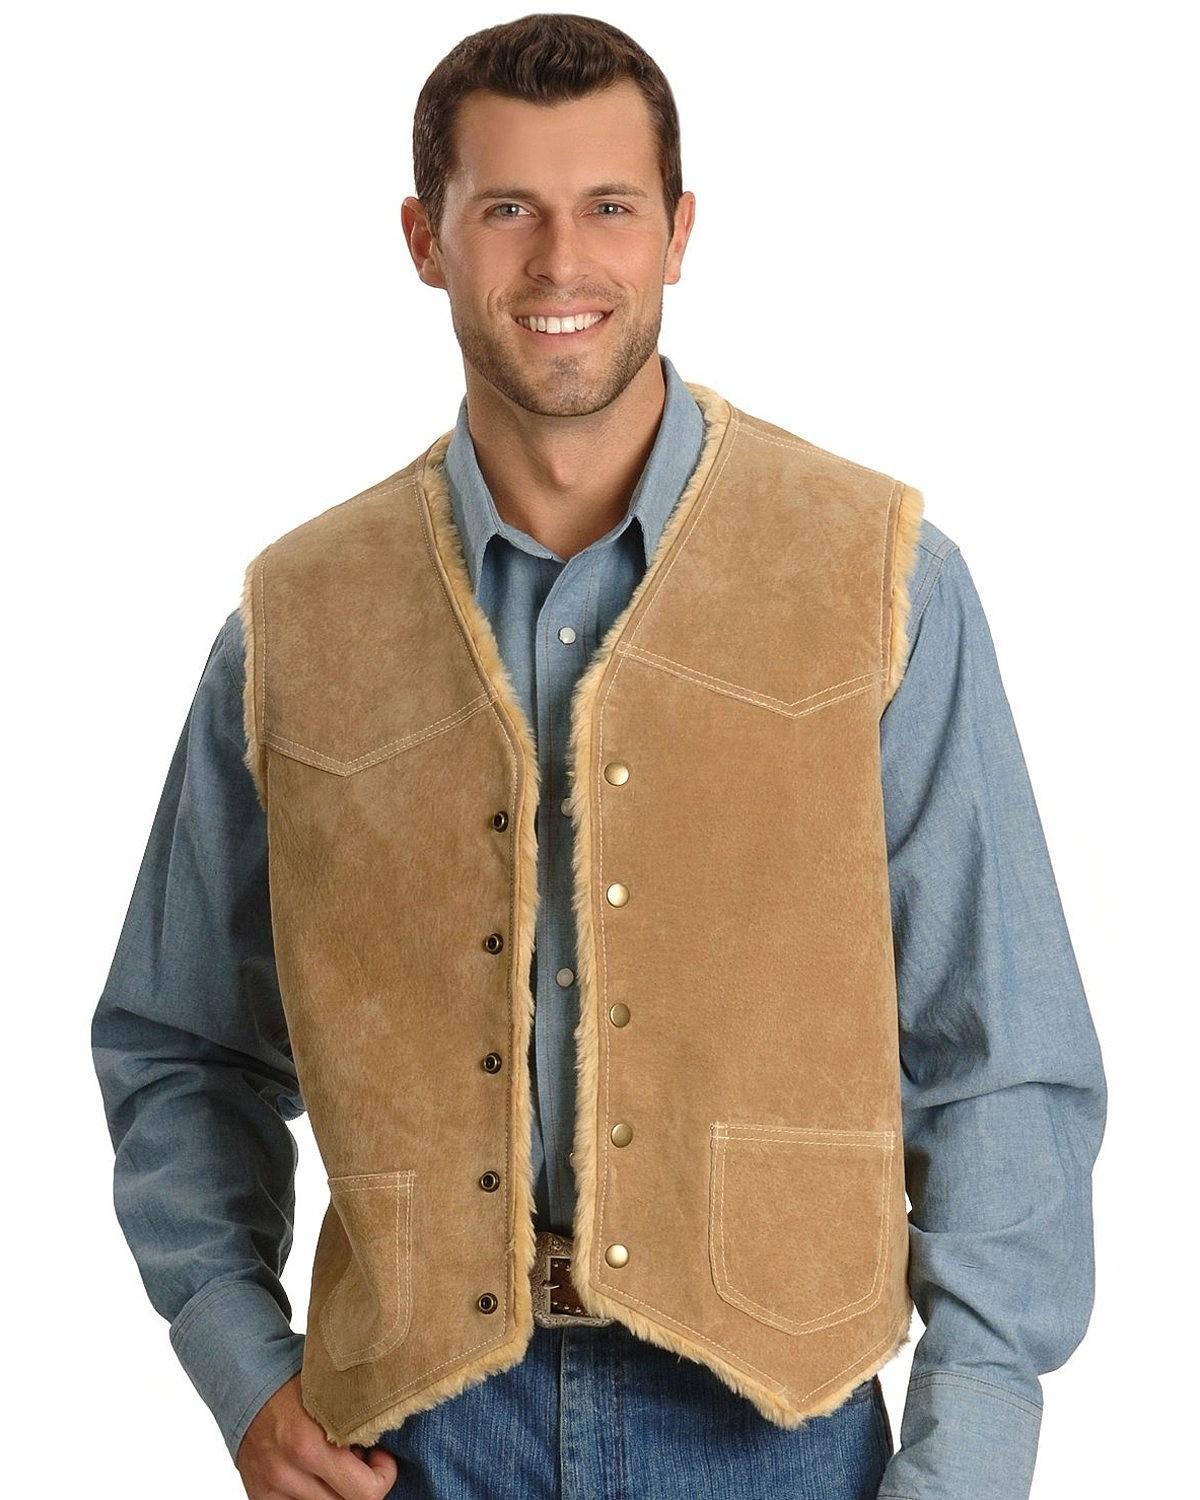 Take a look at our large inventory of quality men's vests. We feature a variety of classic, western style leather vests, as well as insulated down vests for colder weather. Cripple Creek Mens Black Boar Suede Leather Western Snap Front Vest. $ 8. Cripple Creek Mens Black Boar Nappa Leather Western Snap Front Vest. $ 2.